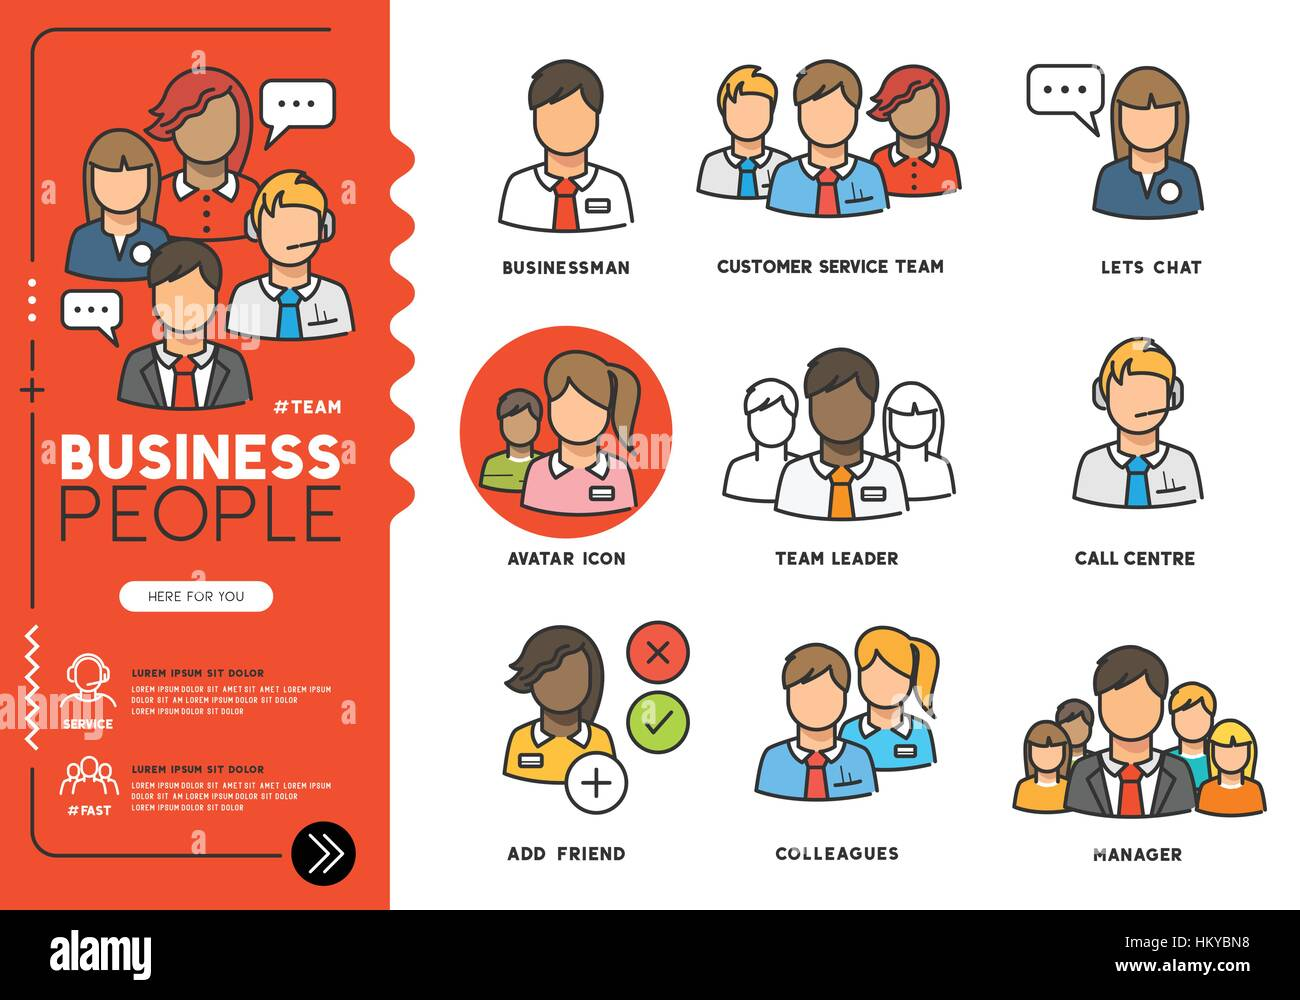 Business people. Profiles of everyday professional men and women in various job roles in smart clothes. Vector illustration - Stock Vector